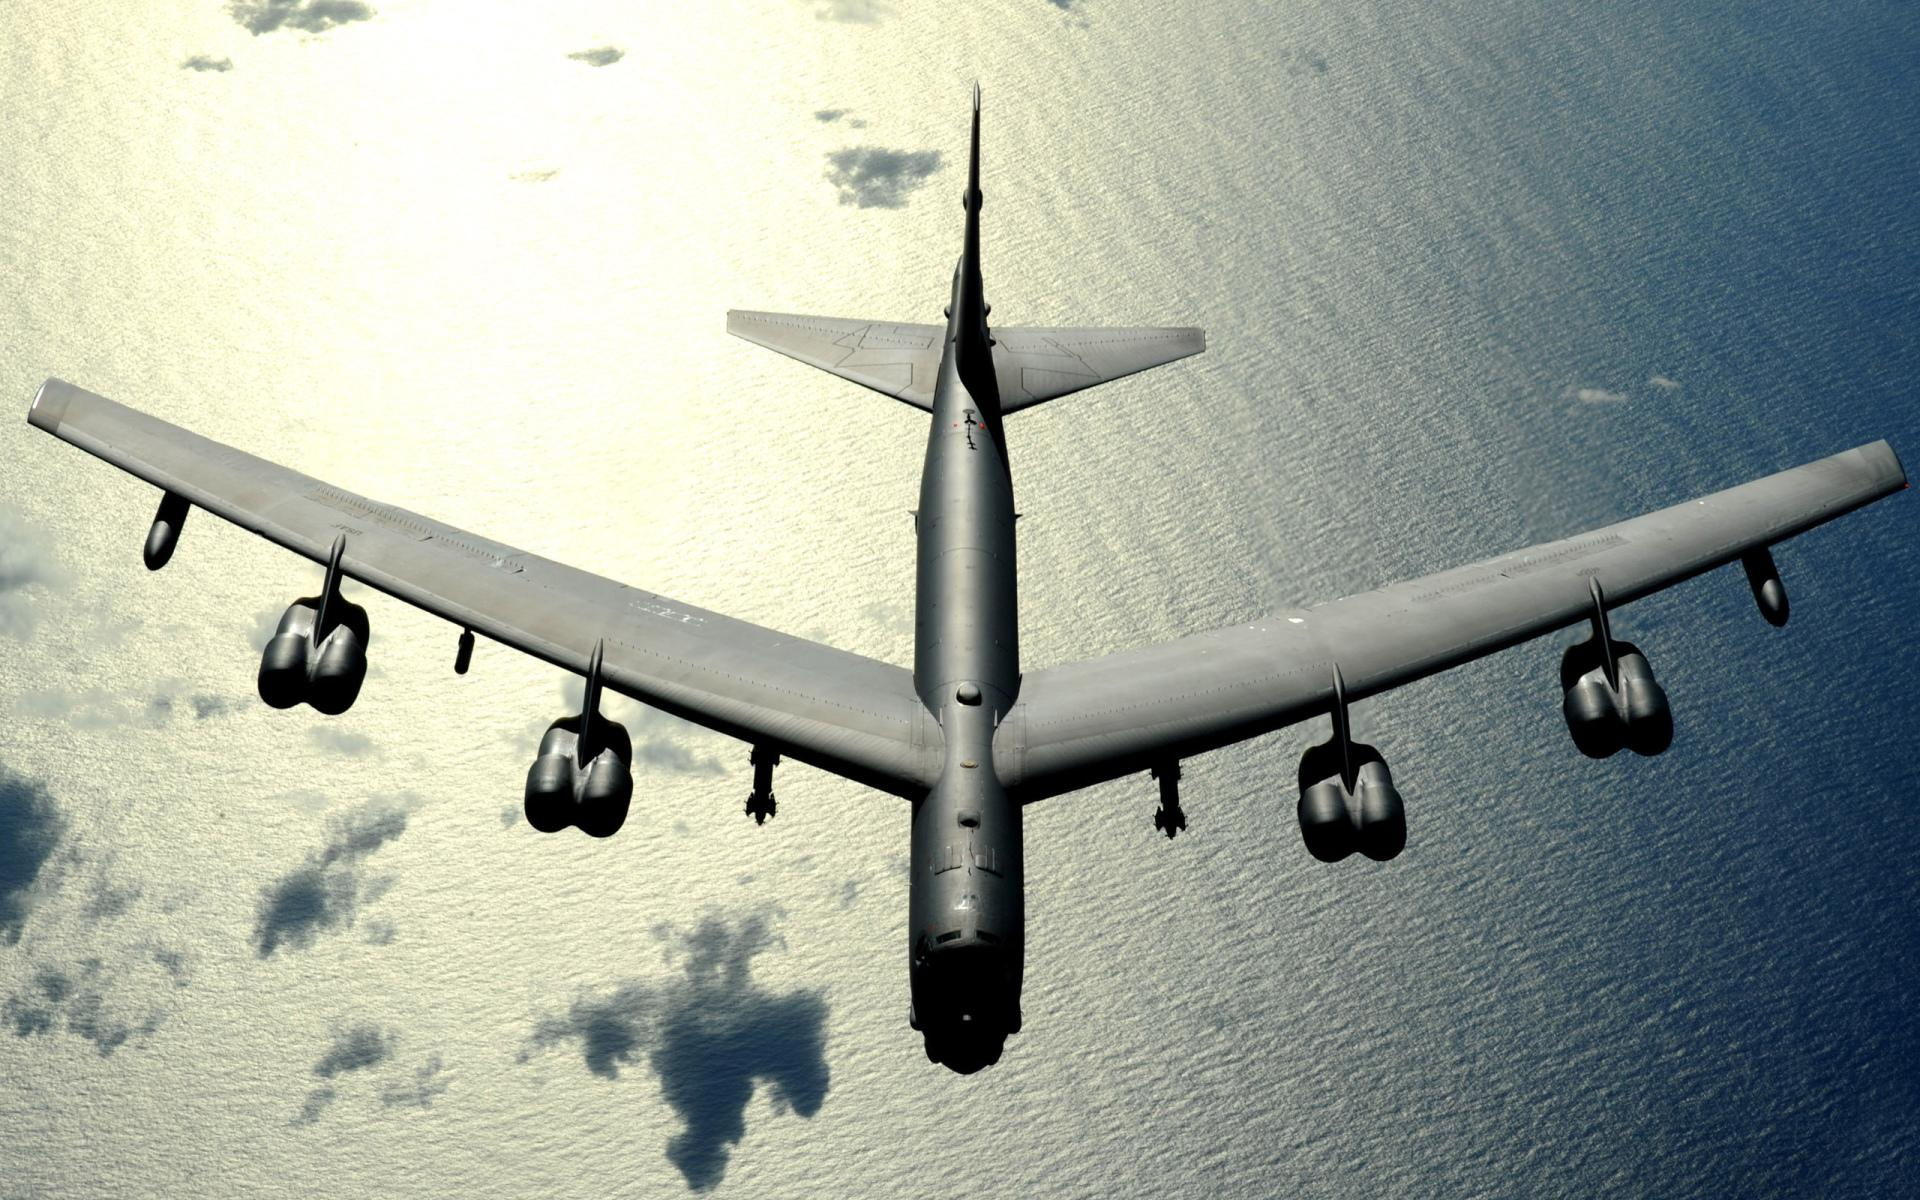 Boeing B-52 Stratofortress wallpapers HD quality